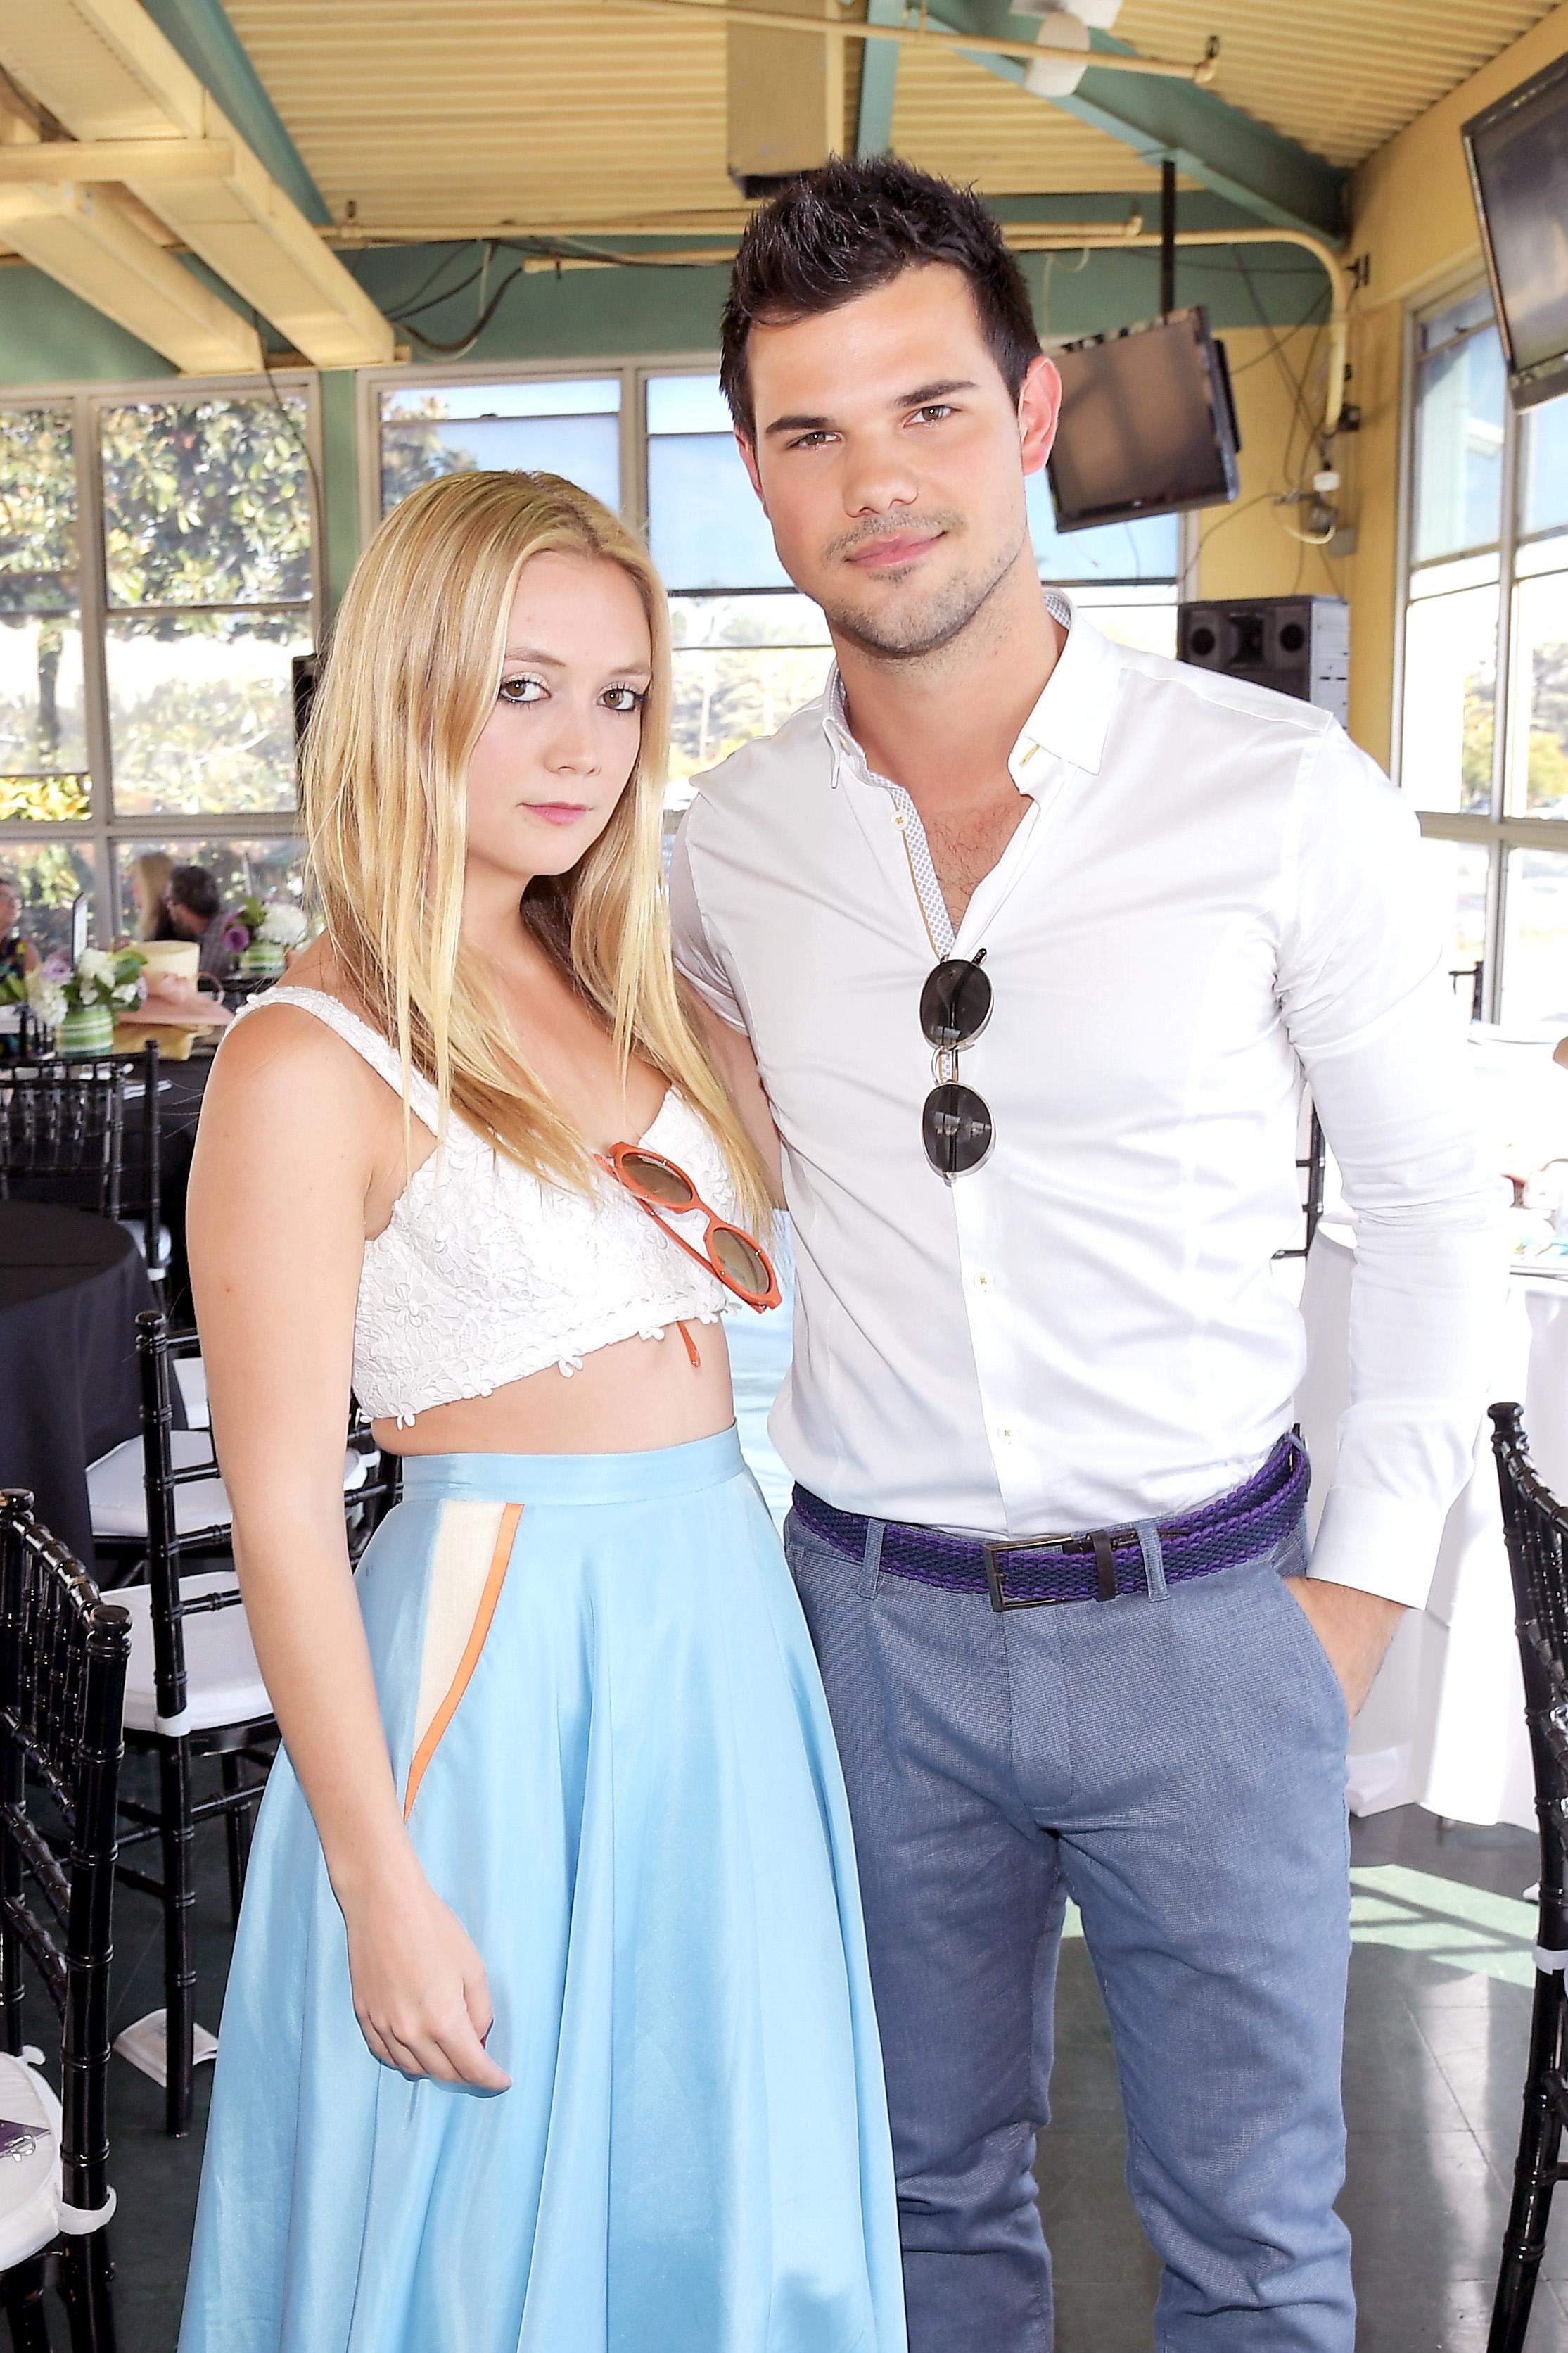 Taylor Lautner Stepped Up Like A Husband To Support Billie Lourd According To Her Uncle